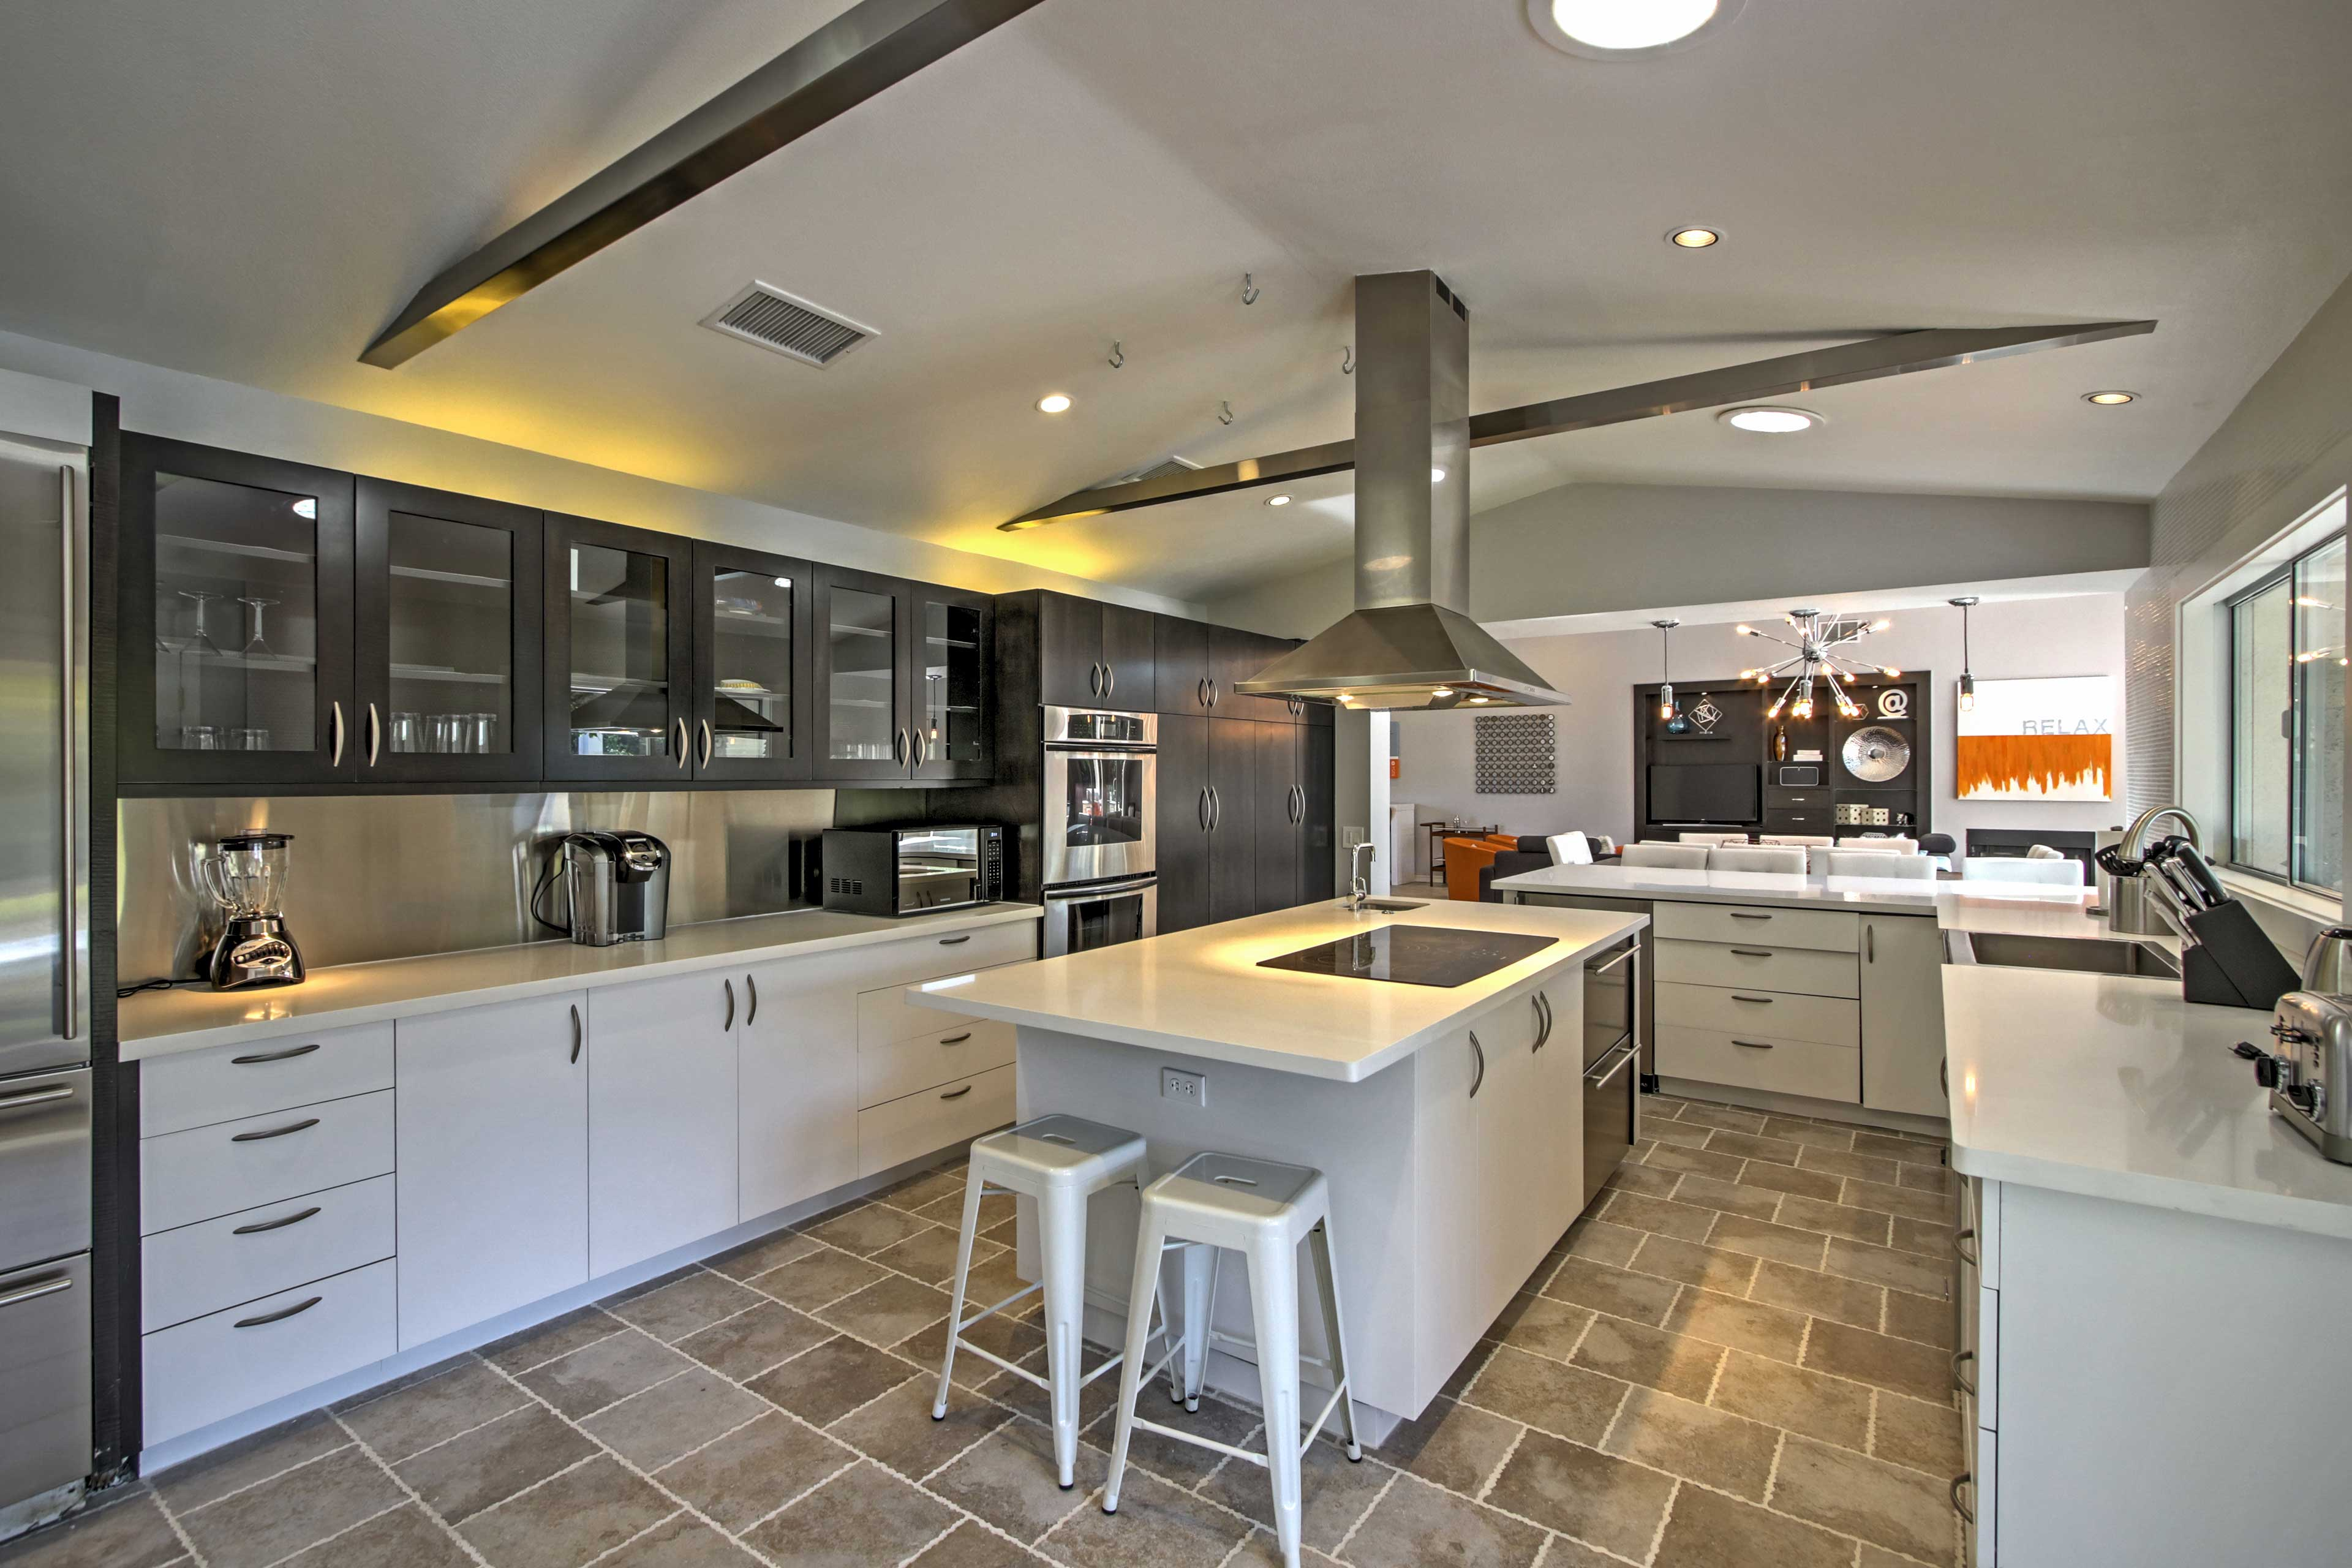 The fully equipped kitchen is a chef's dream!